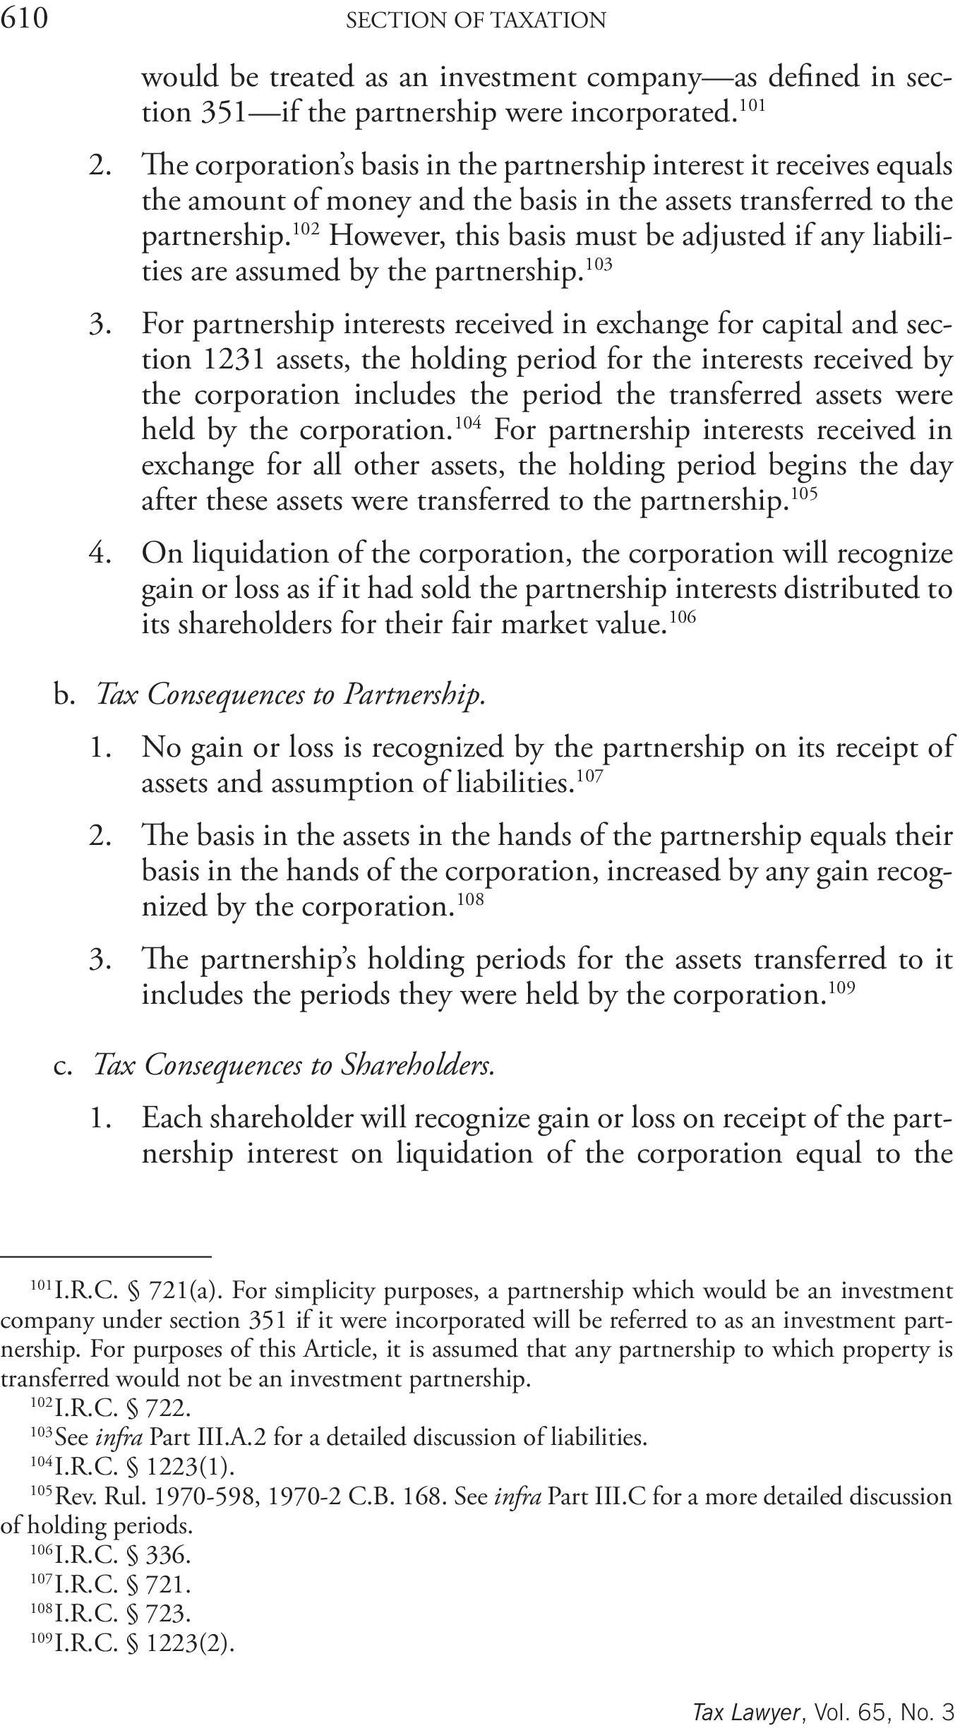 102 However, this basis must be adjusted if any liabilities are assumed by the partnership.